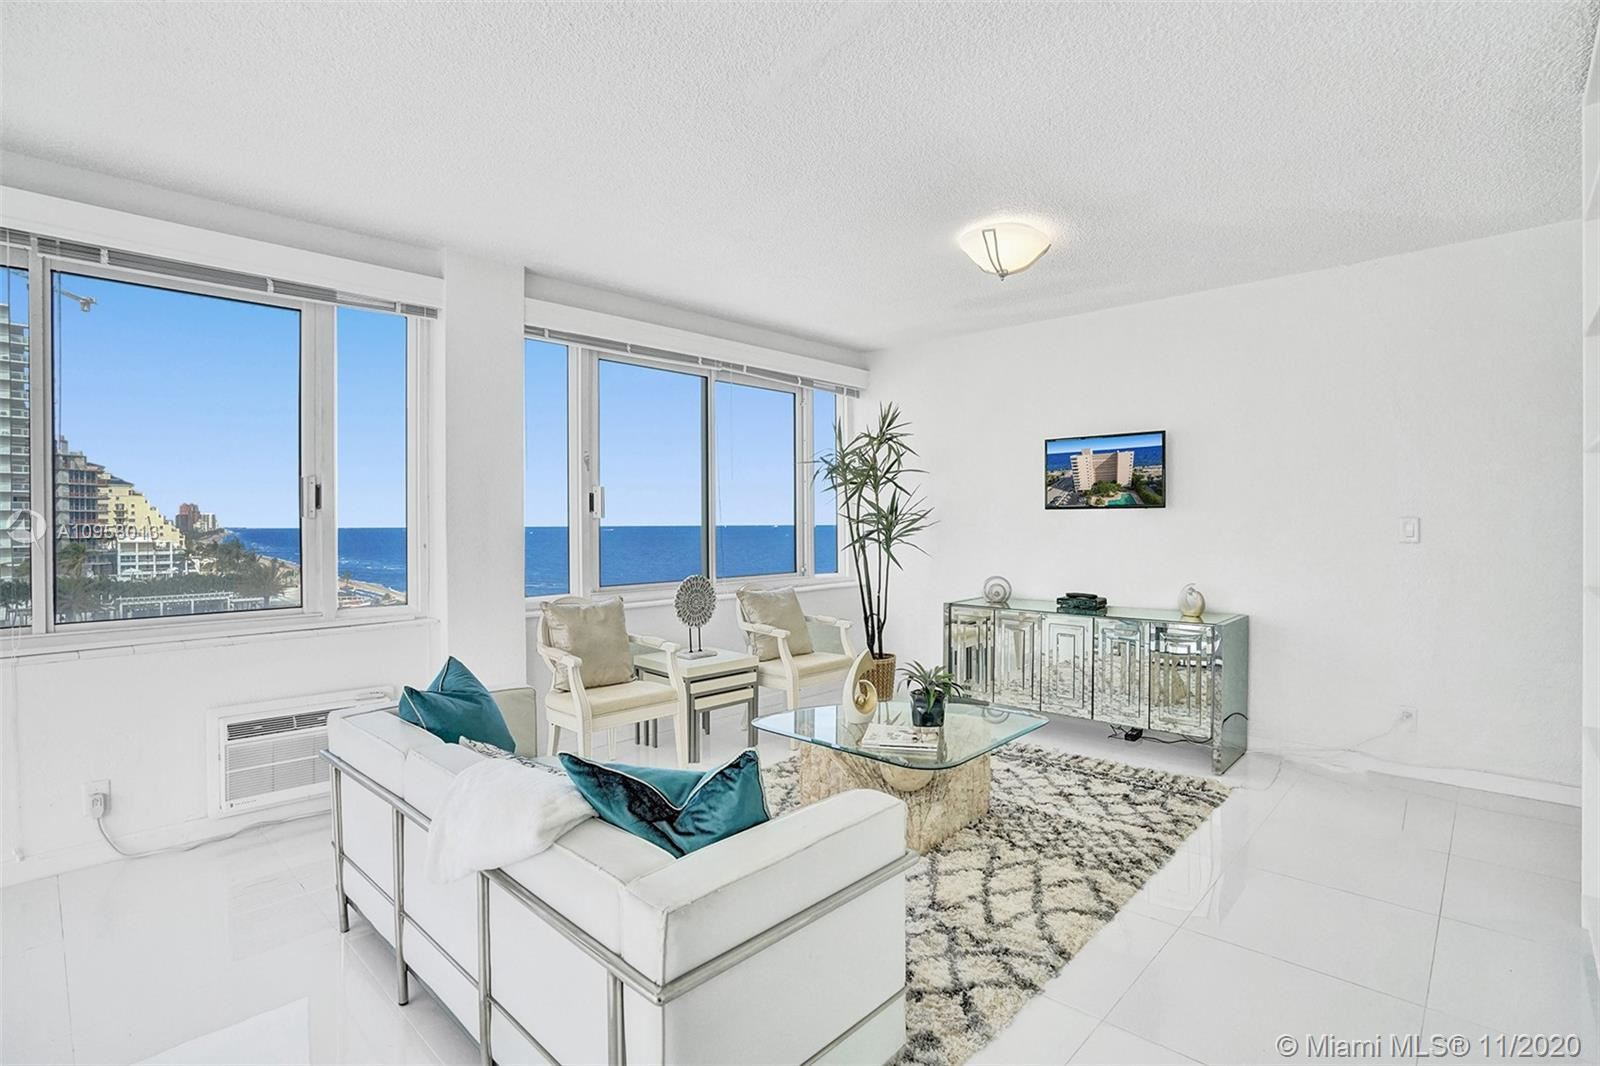 345 N Fort Lauderdale Beach Blvd #1001, Fort Lauderdale, FL 33304 - #: A10958013